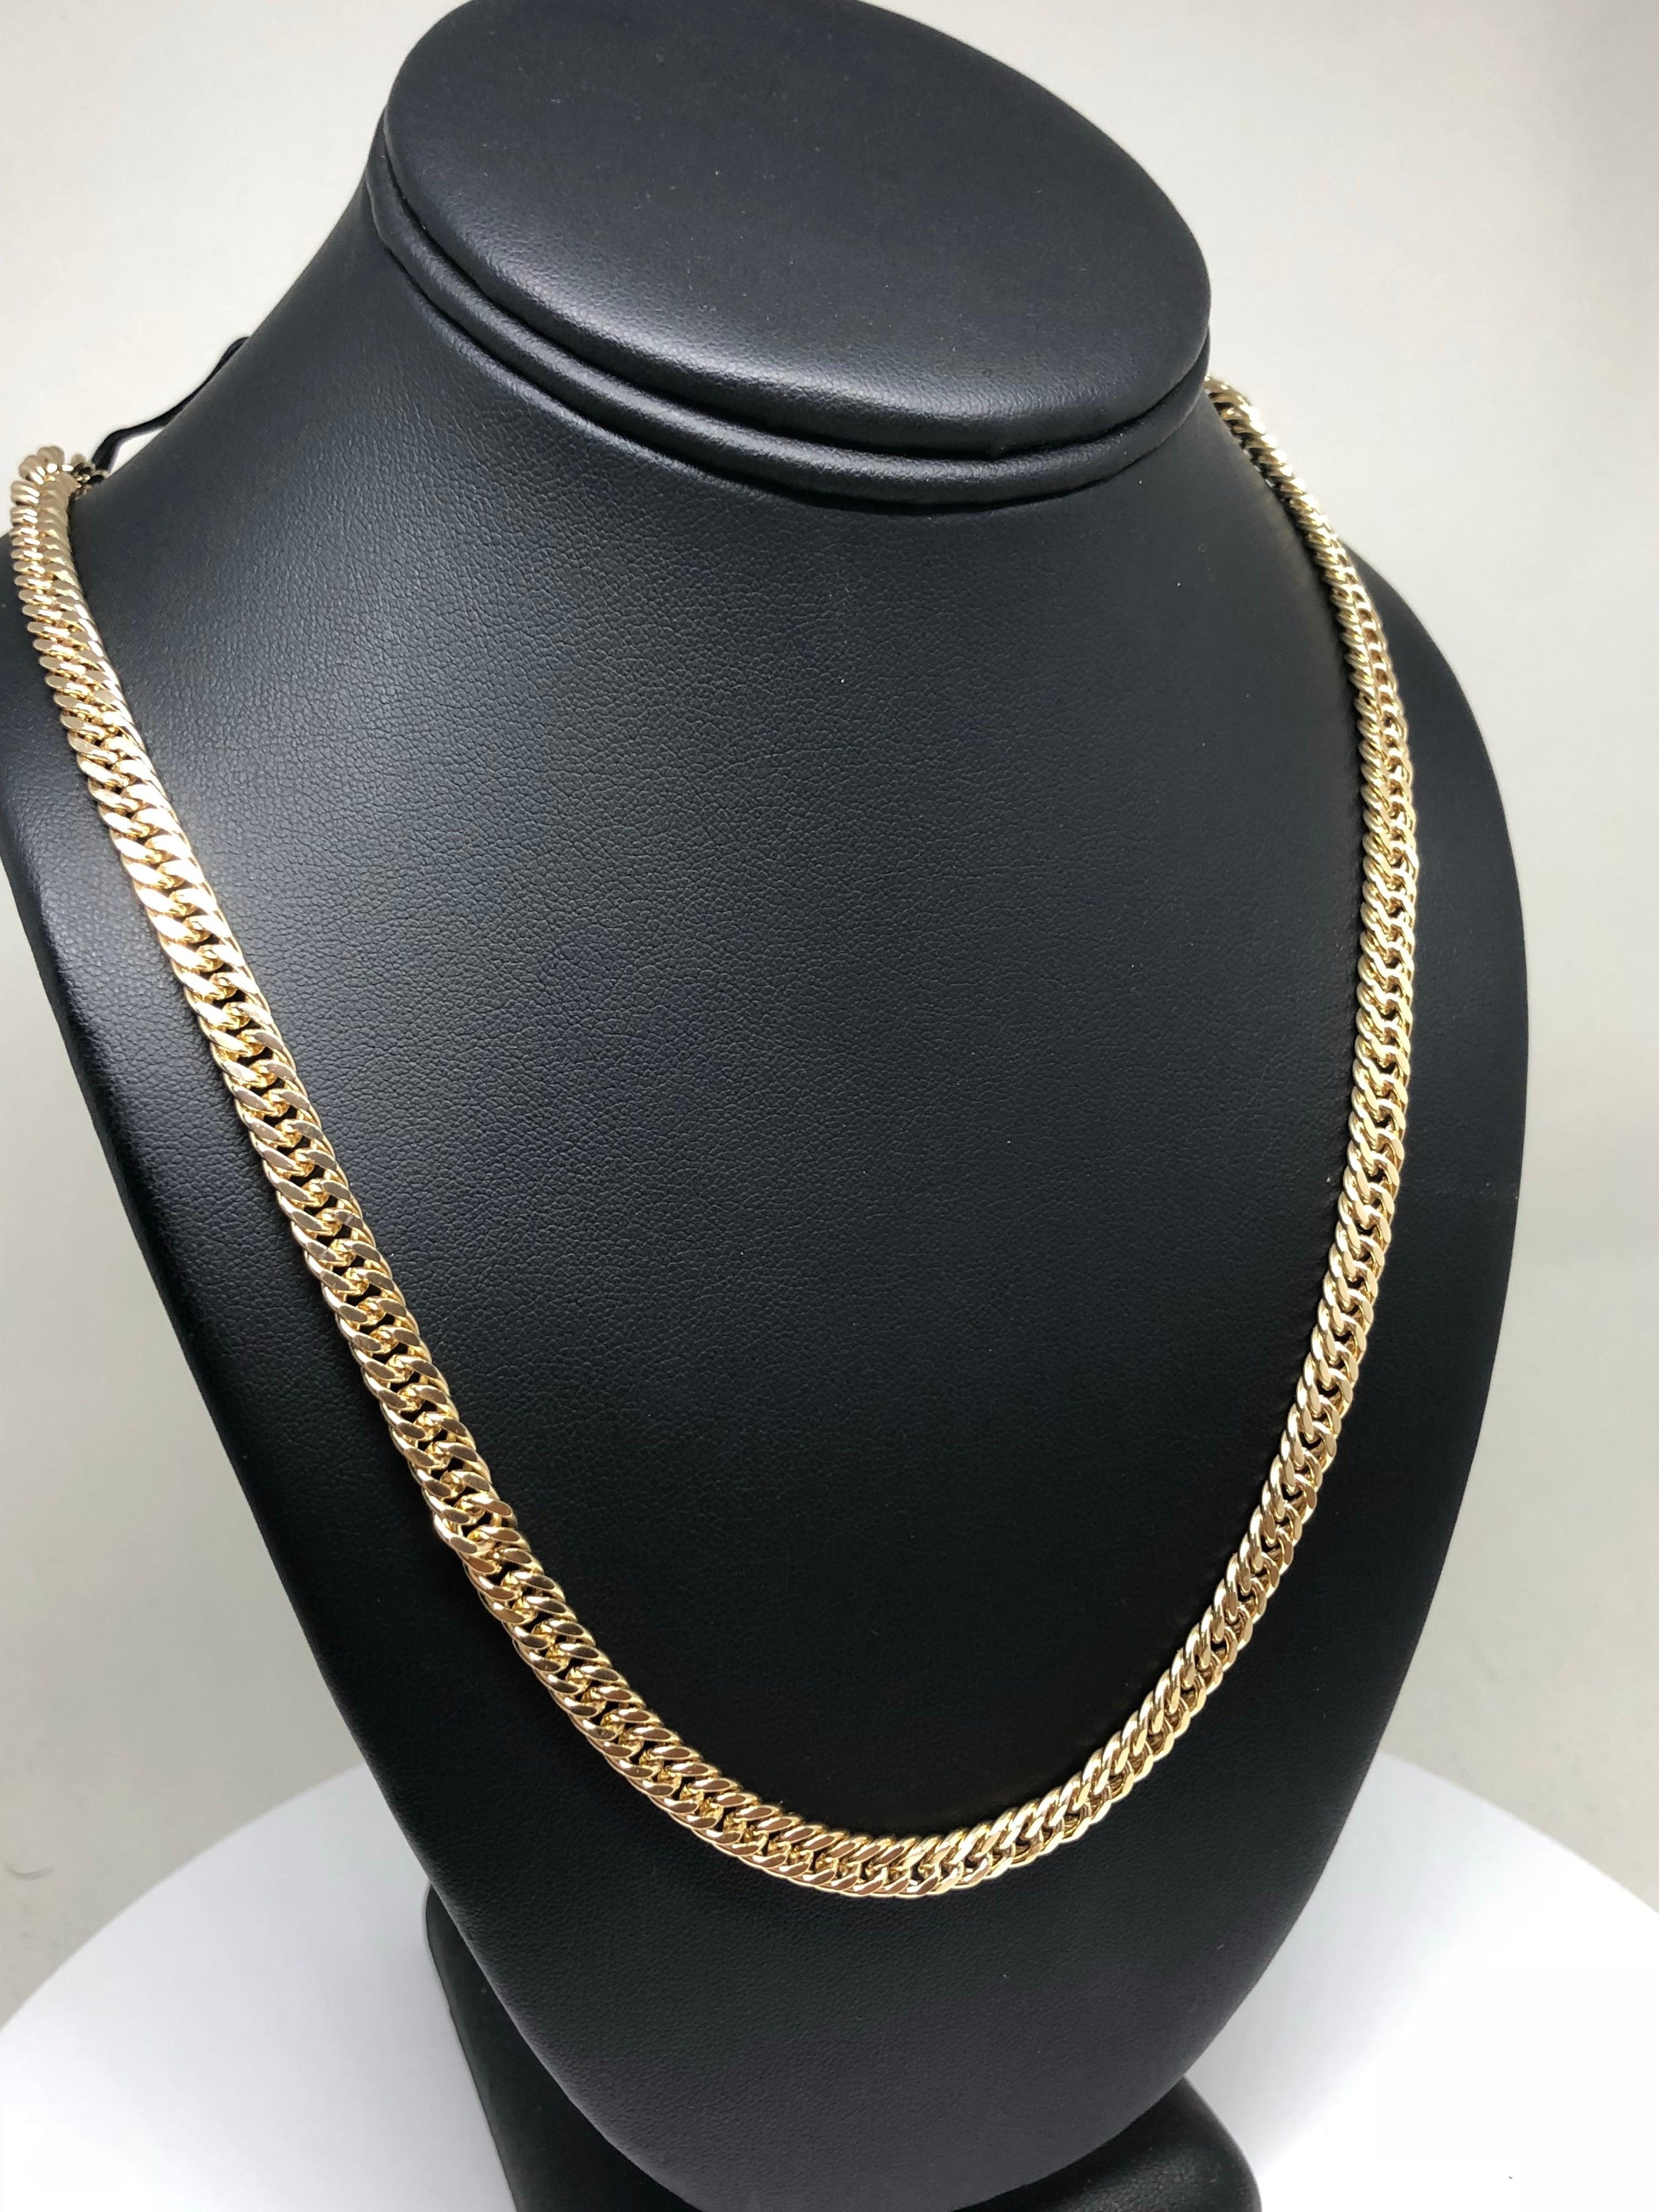 Men's Large Hip Hop 30 Inch Cuban Link Chain Gold Plated 6mm Width - Fran & Co. Jewelry